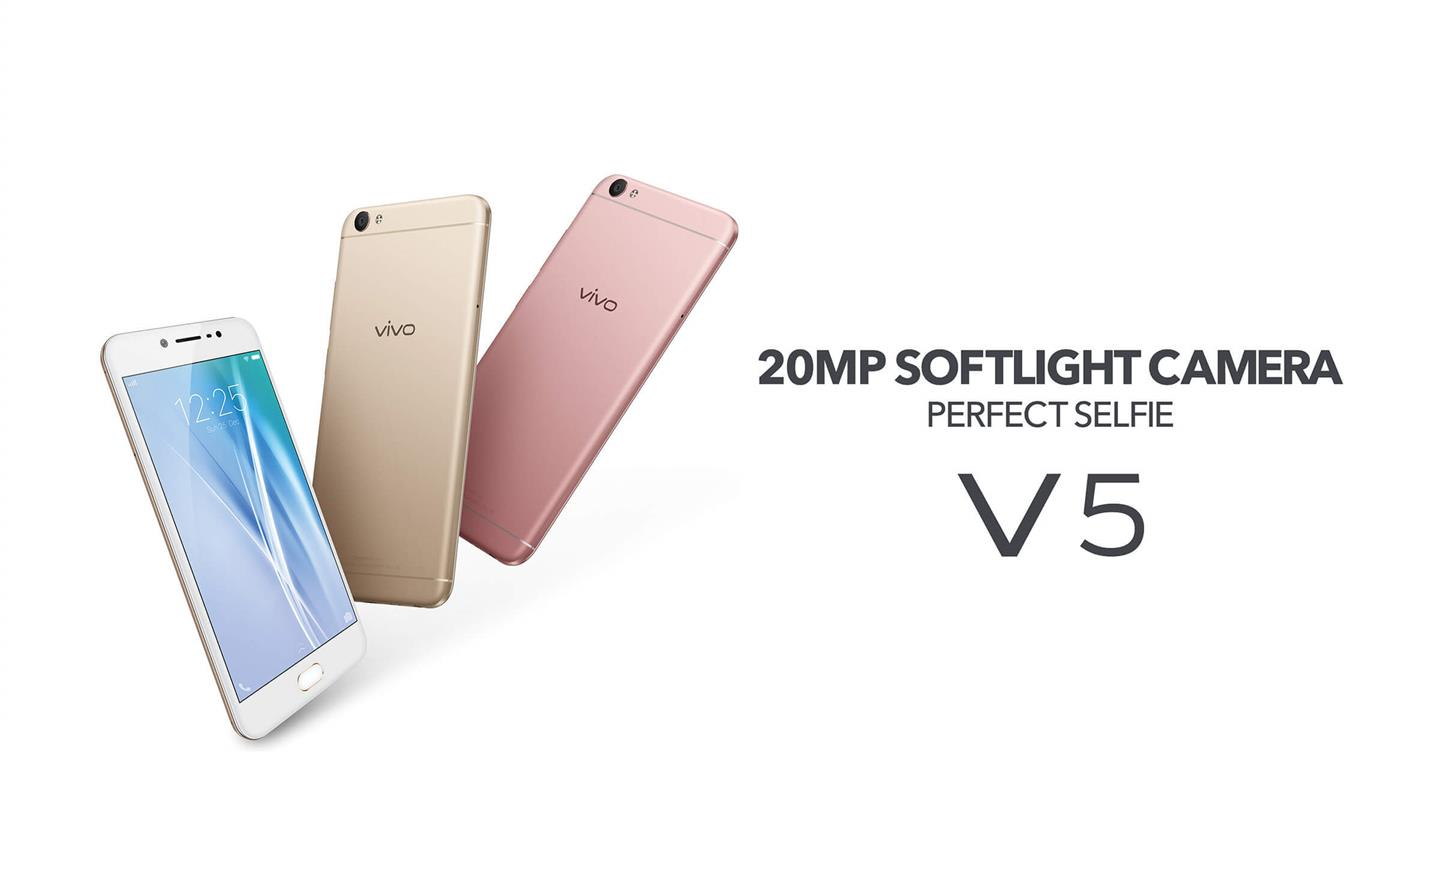 Vivo V5 [20MP softlight camera]32GB+4GB RAM - Original Malaysia Set